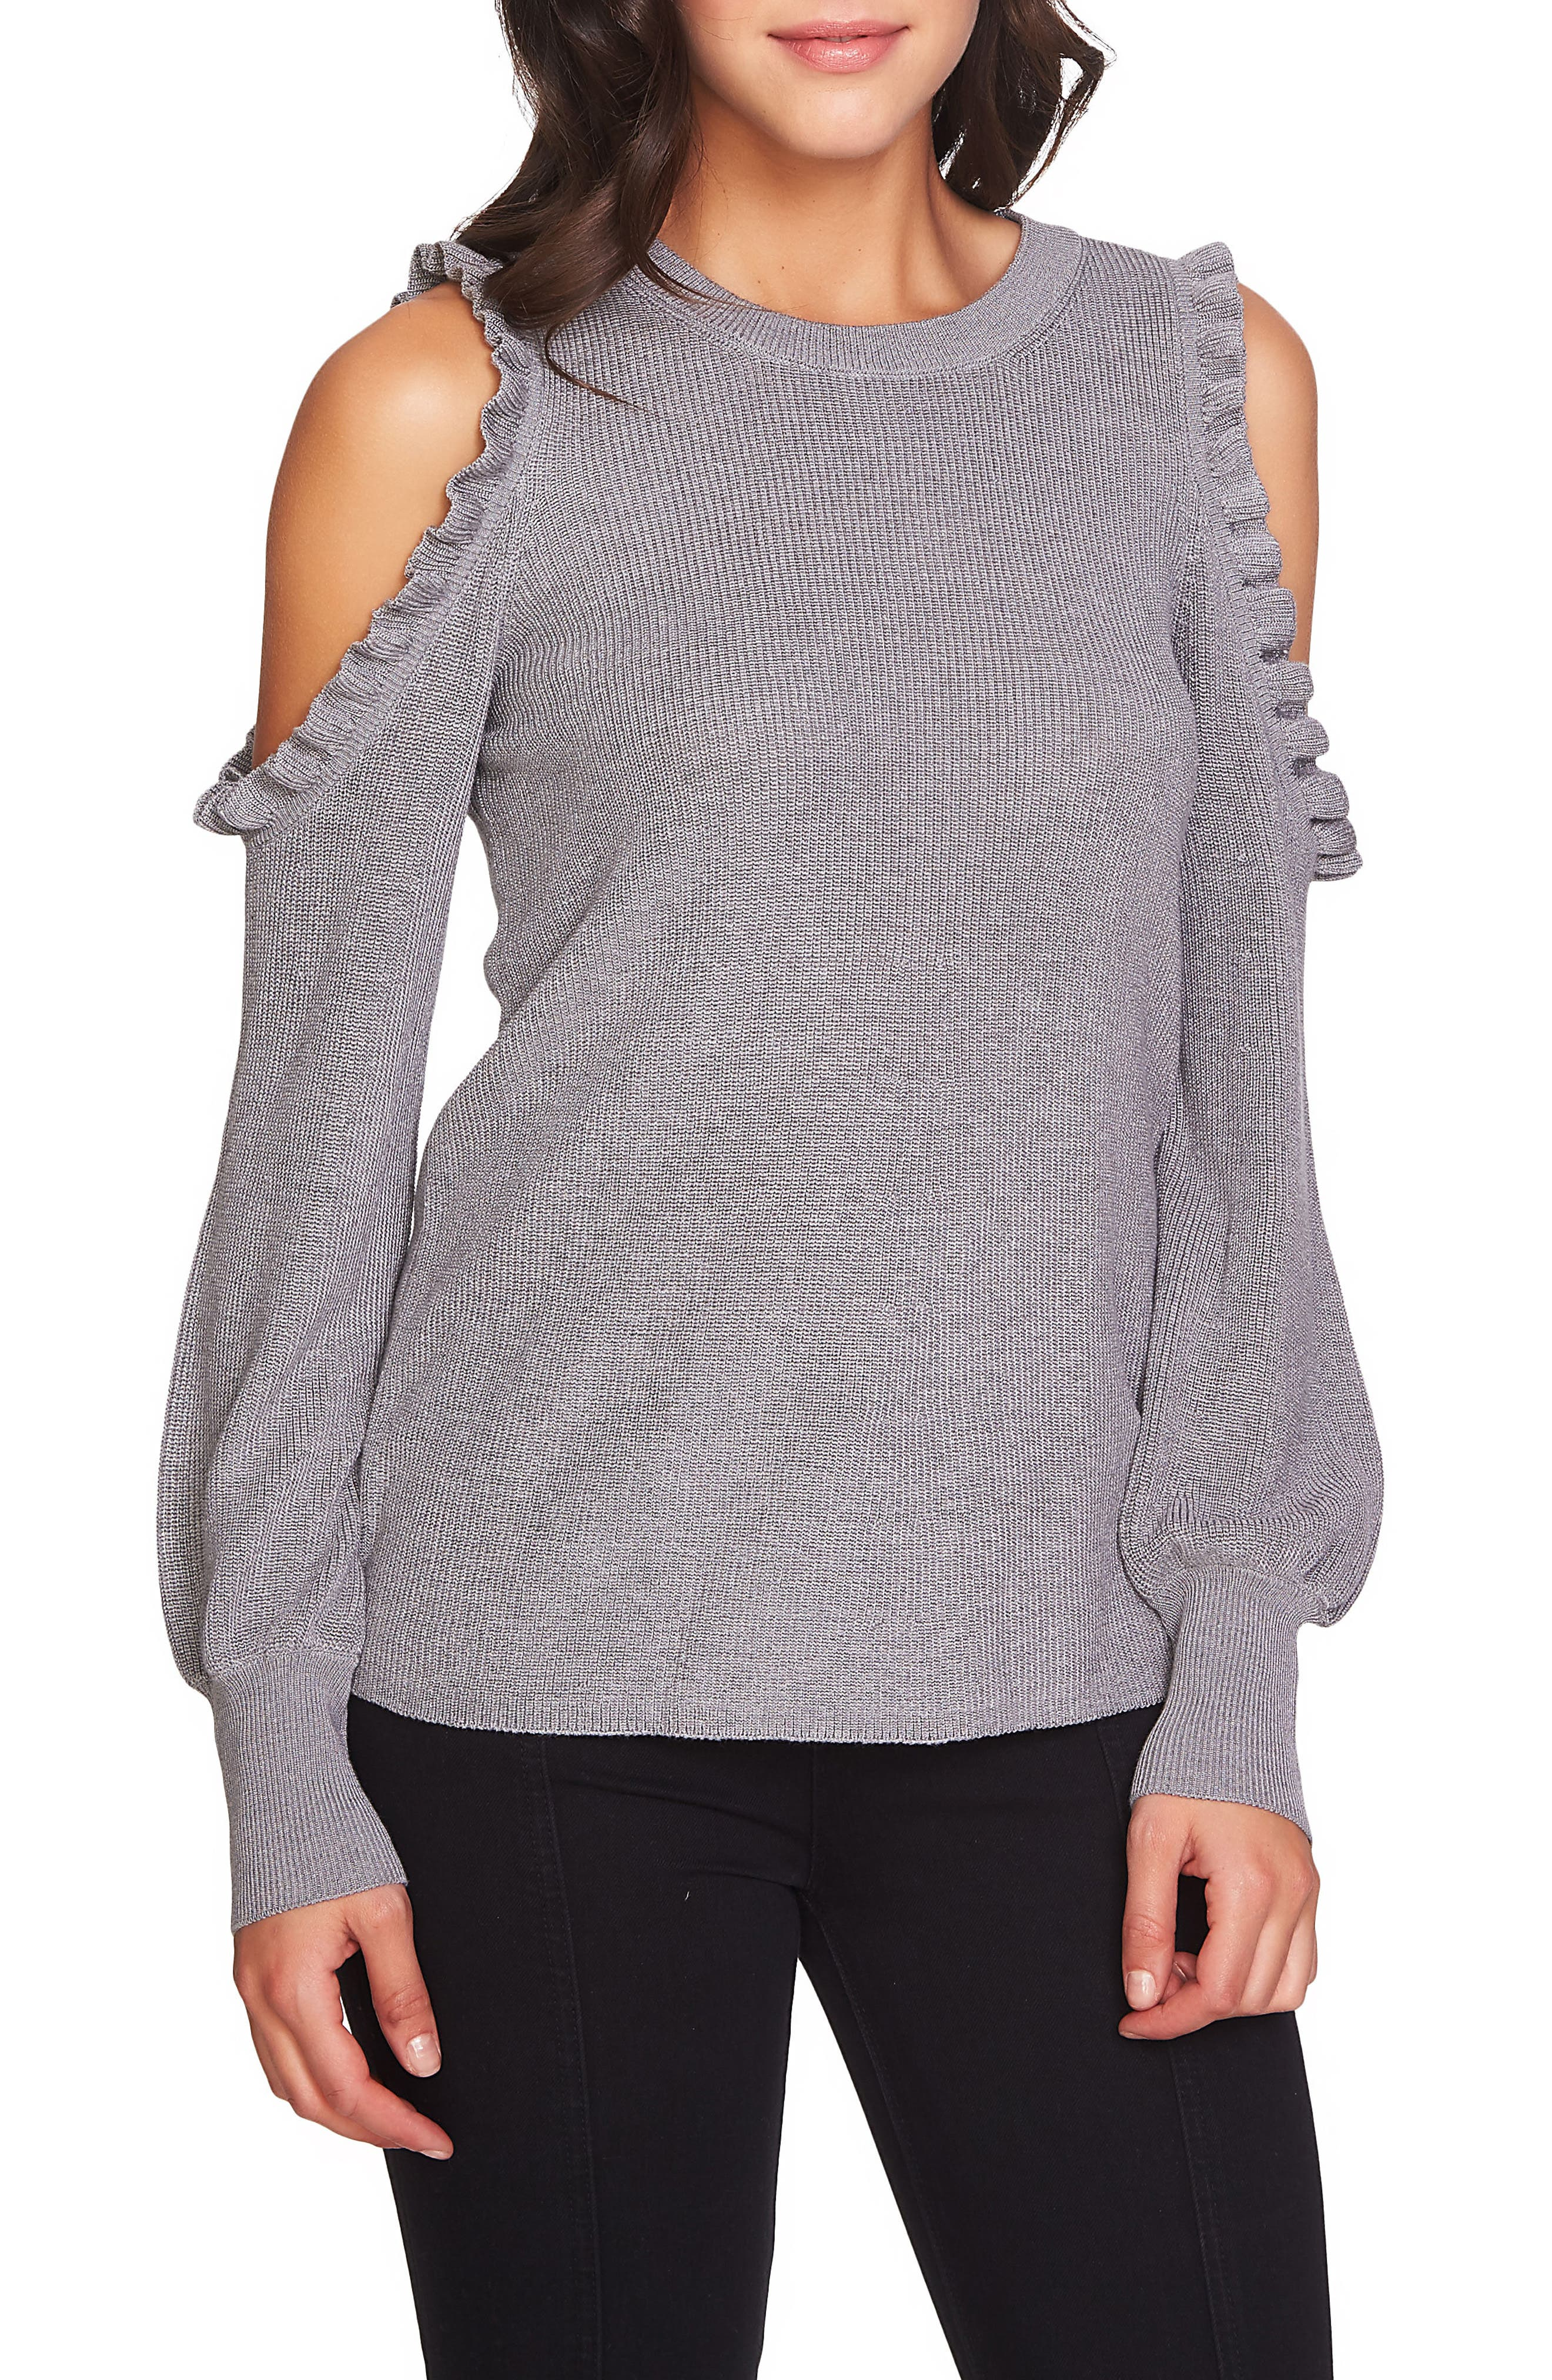 Main Image - 1.STATE Cold Shoulder Sweater